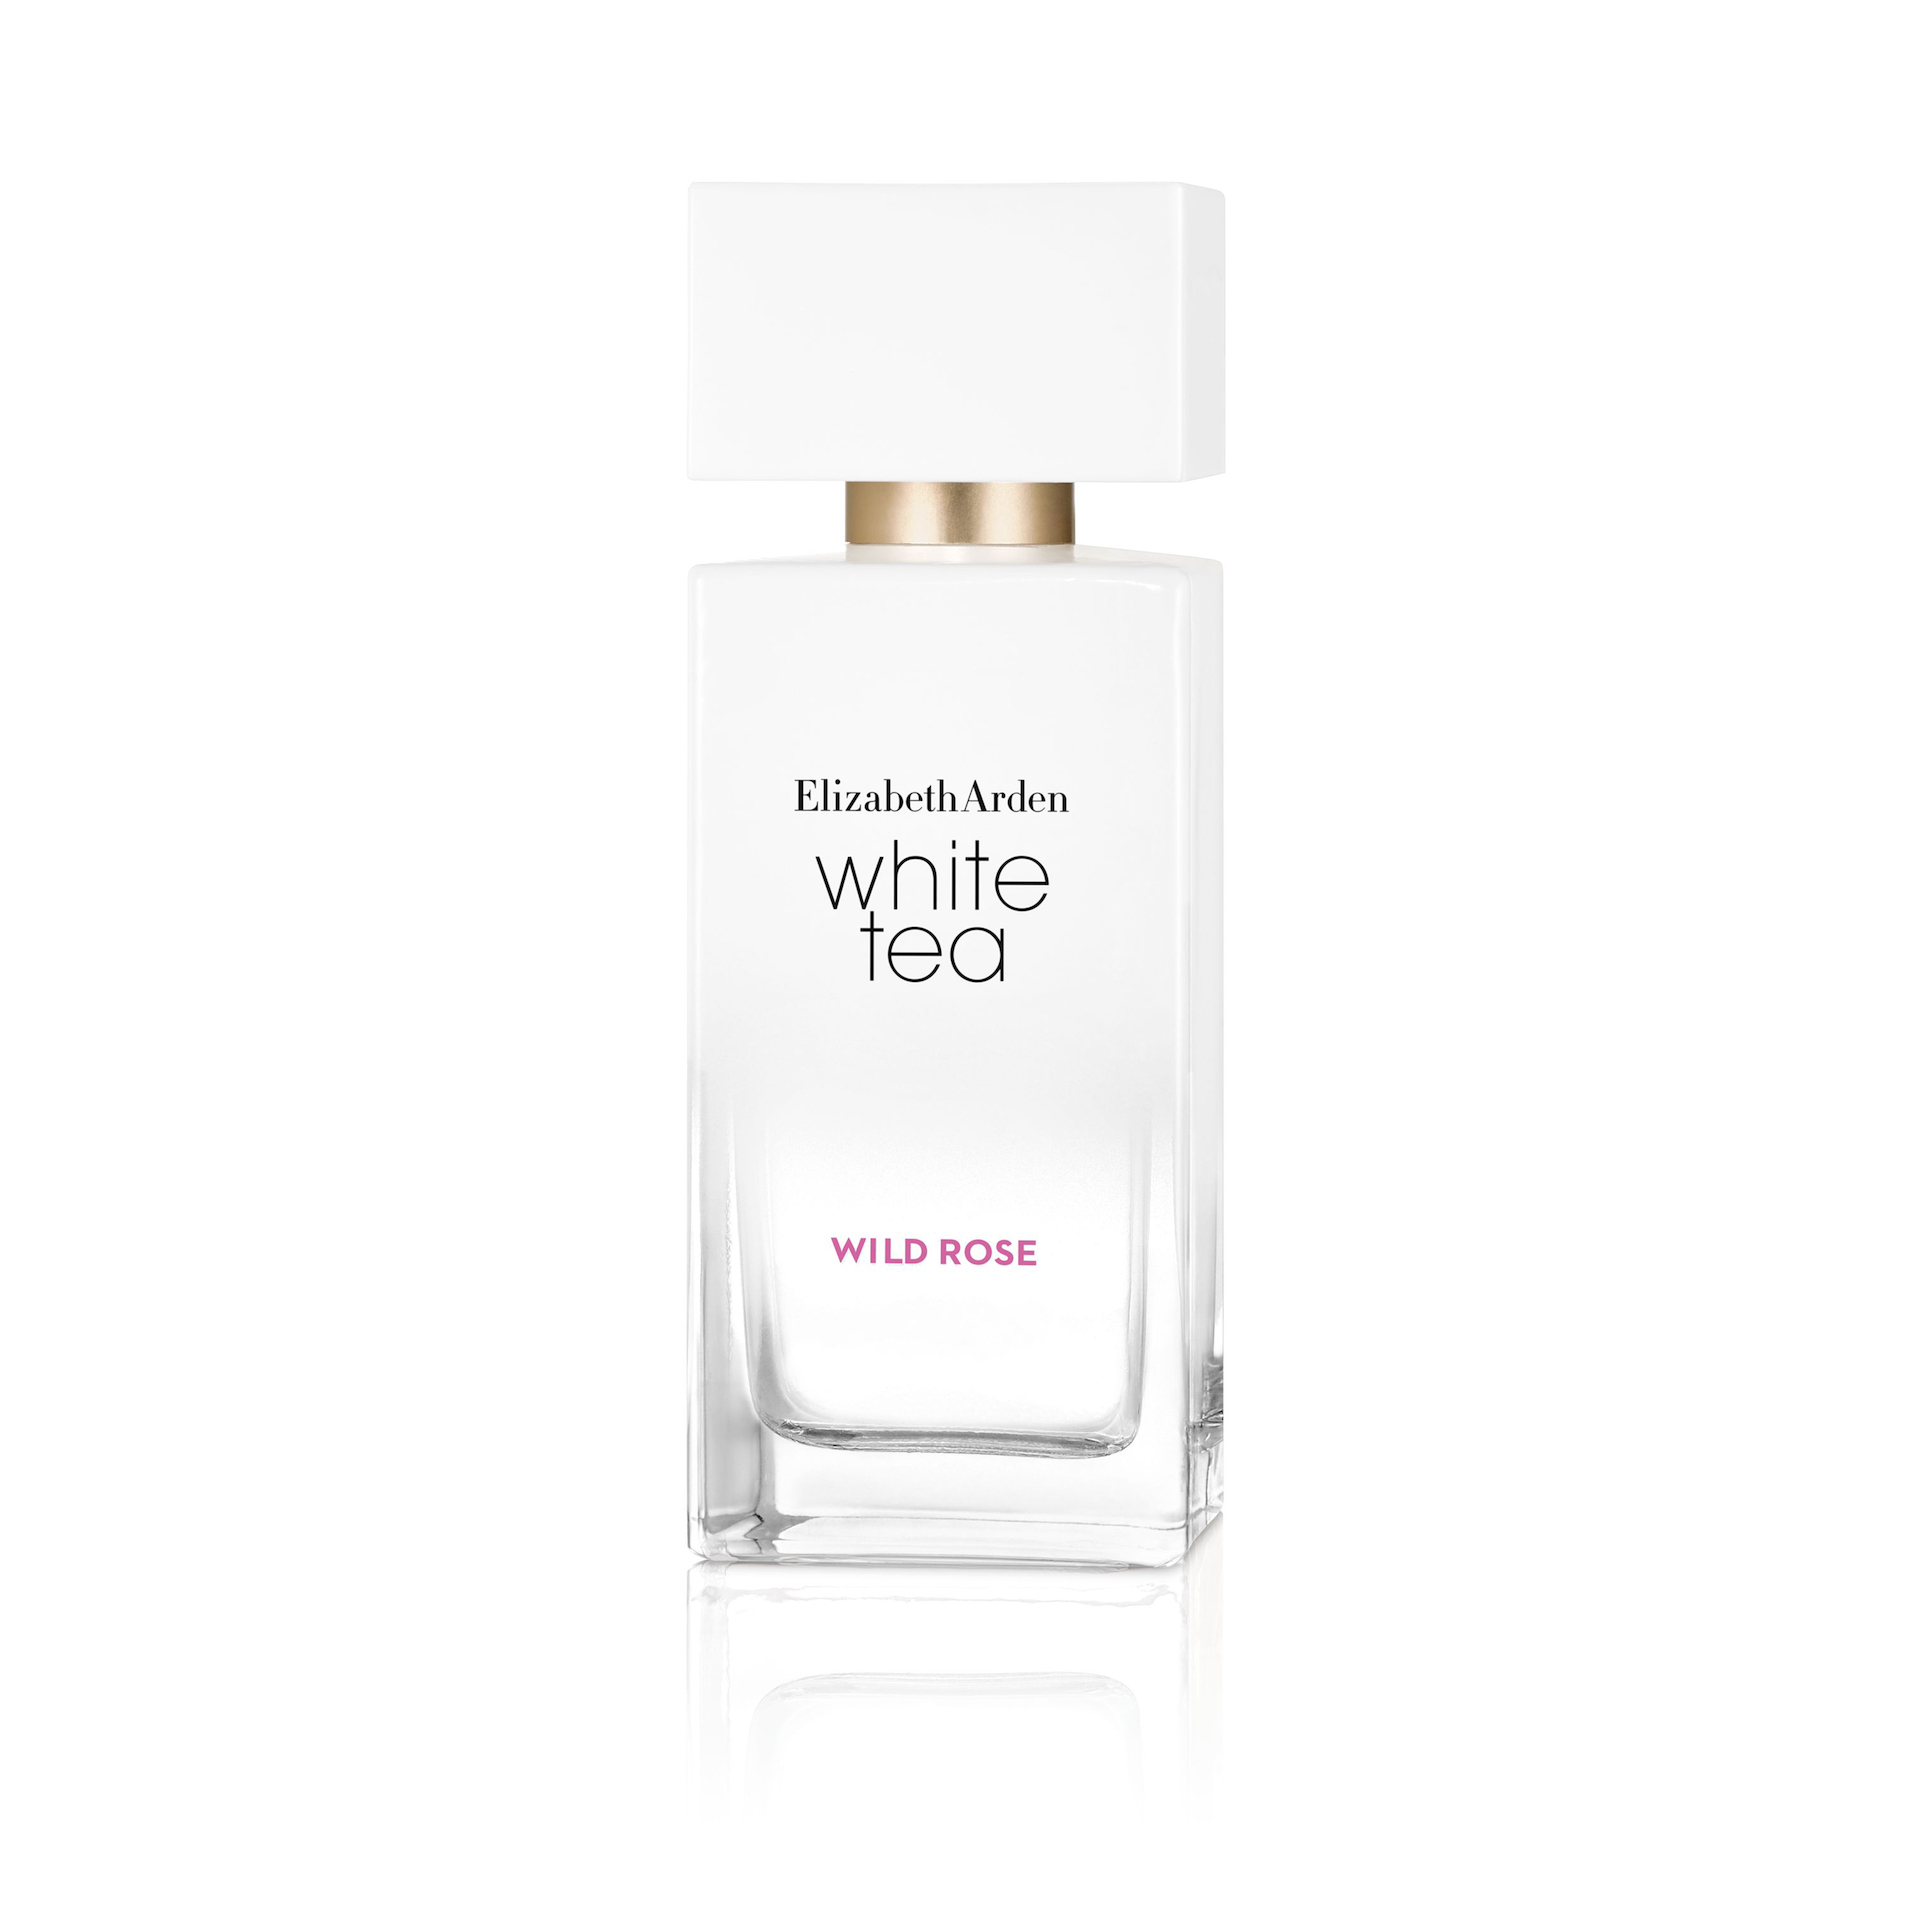 White Tea Wild Rose Edt 50 ml